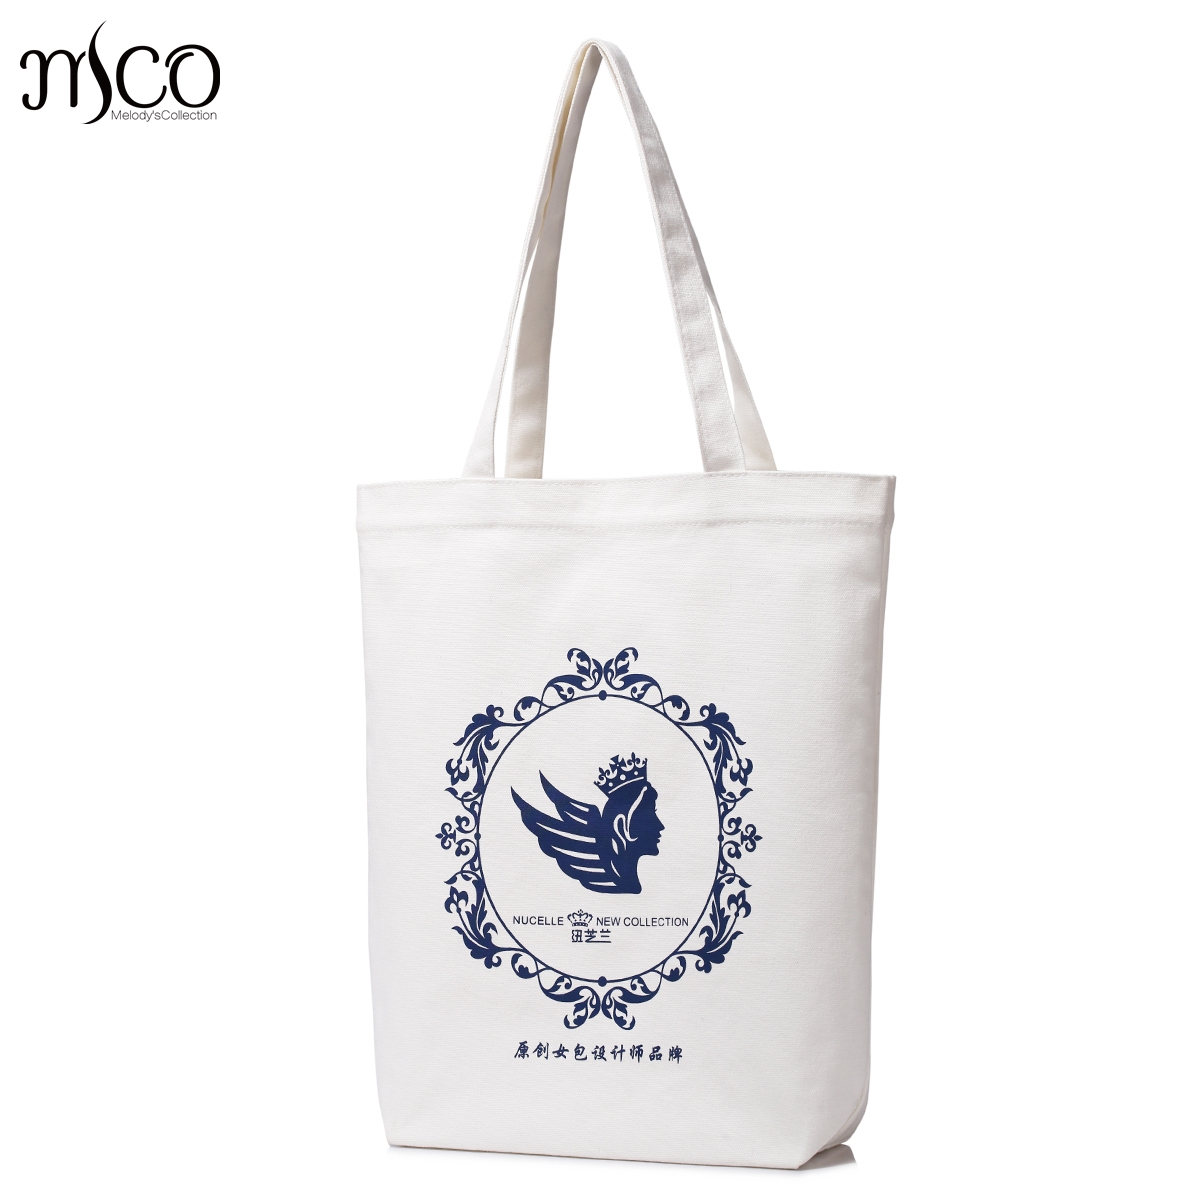 Compare Prices on Printed Shopping Bags Wholesale- Online Shopping ...